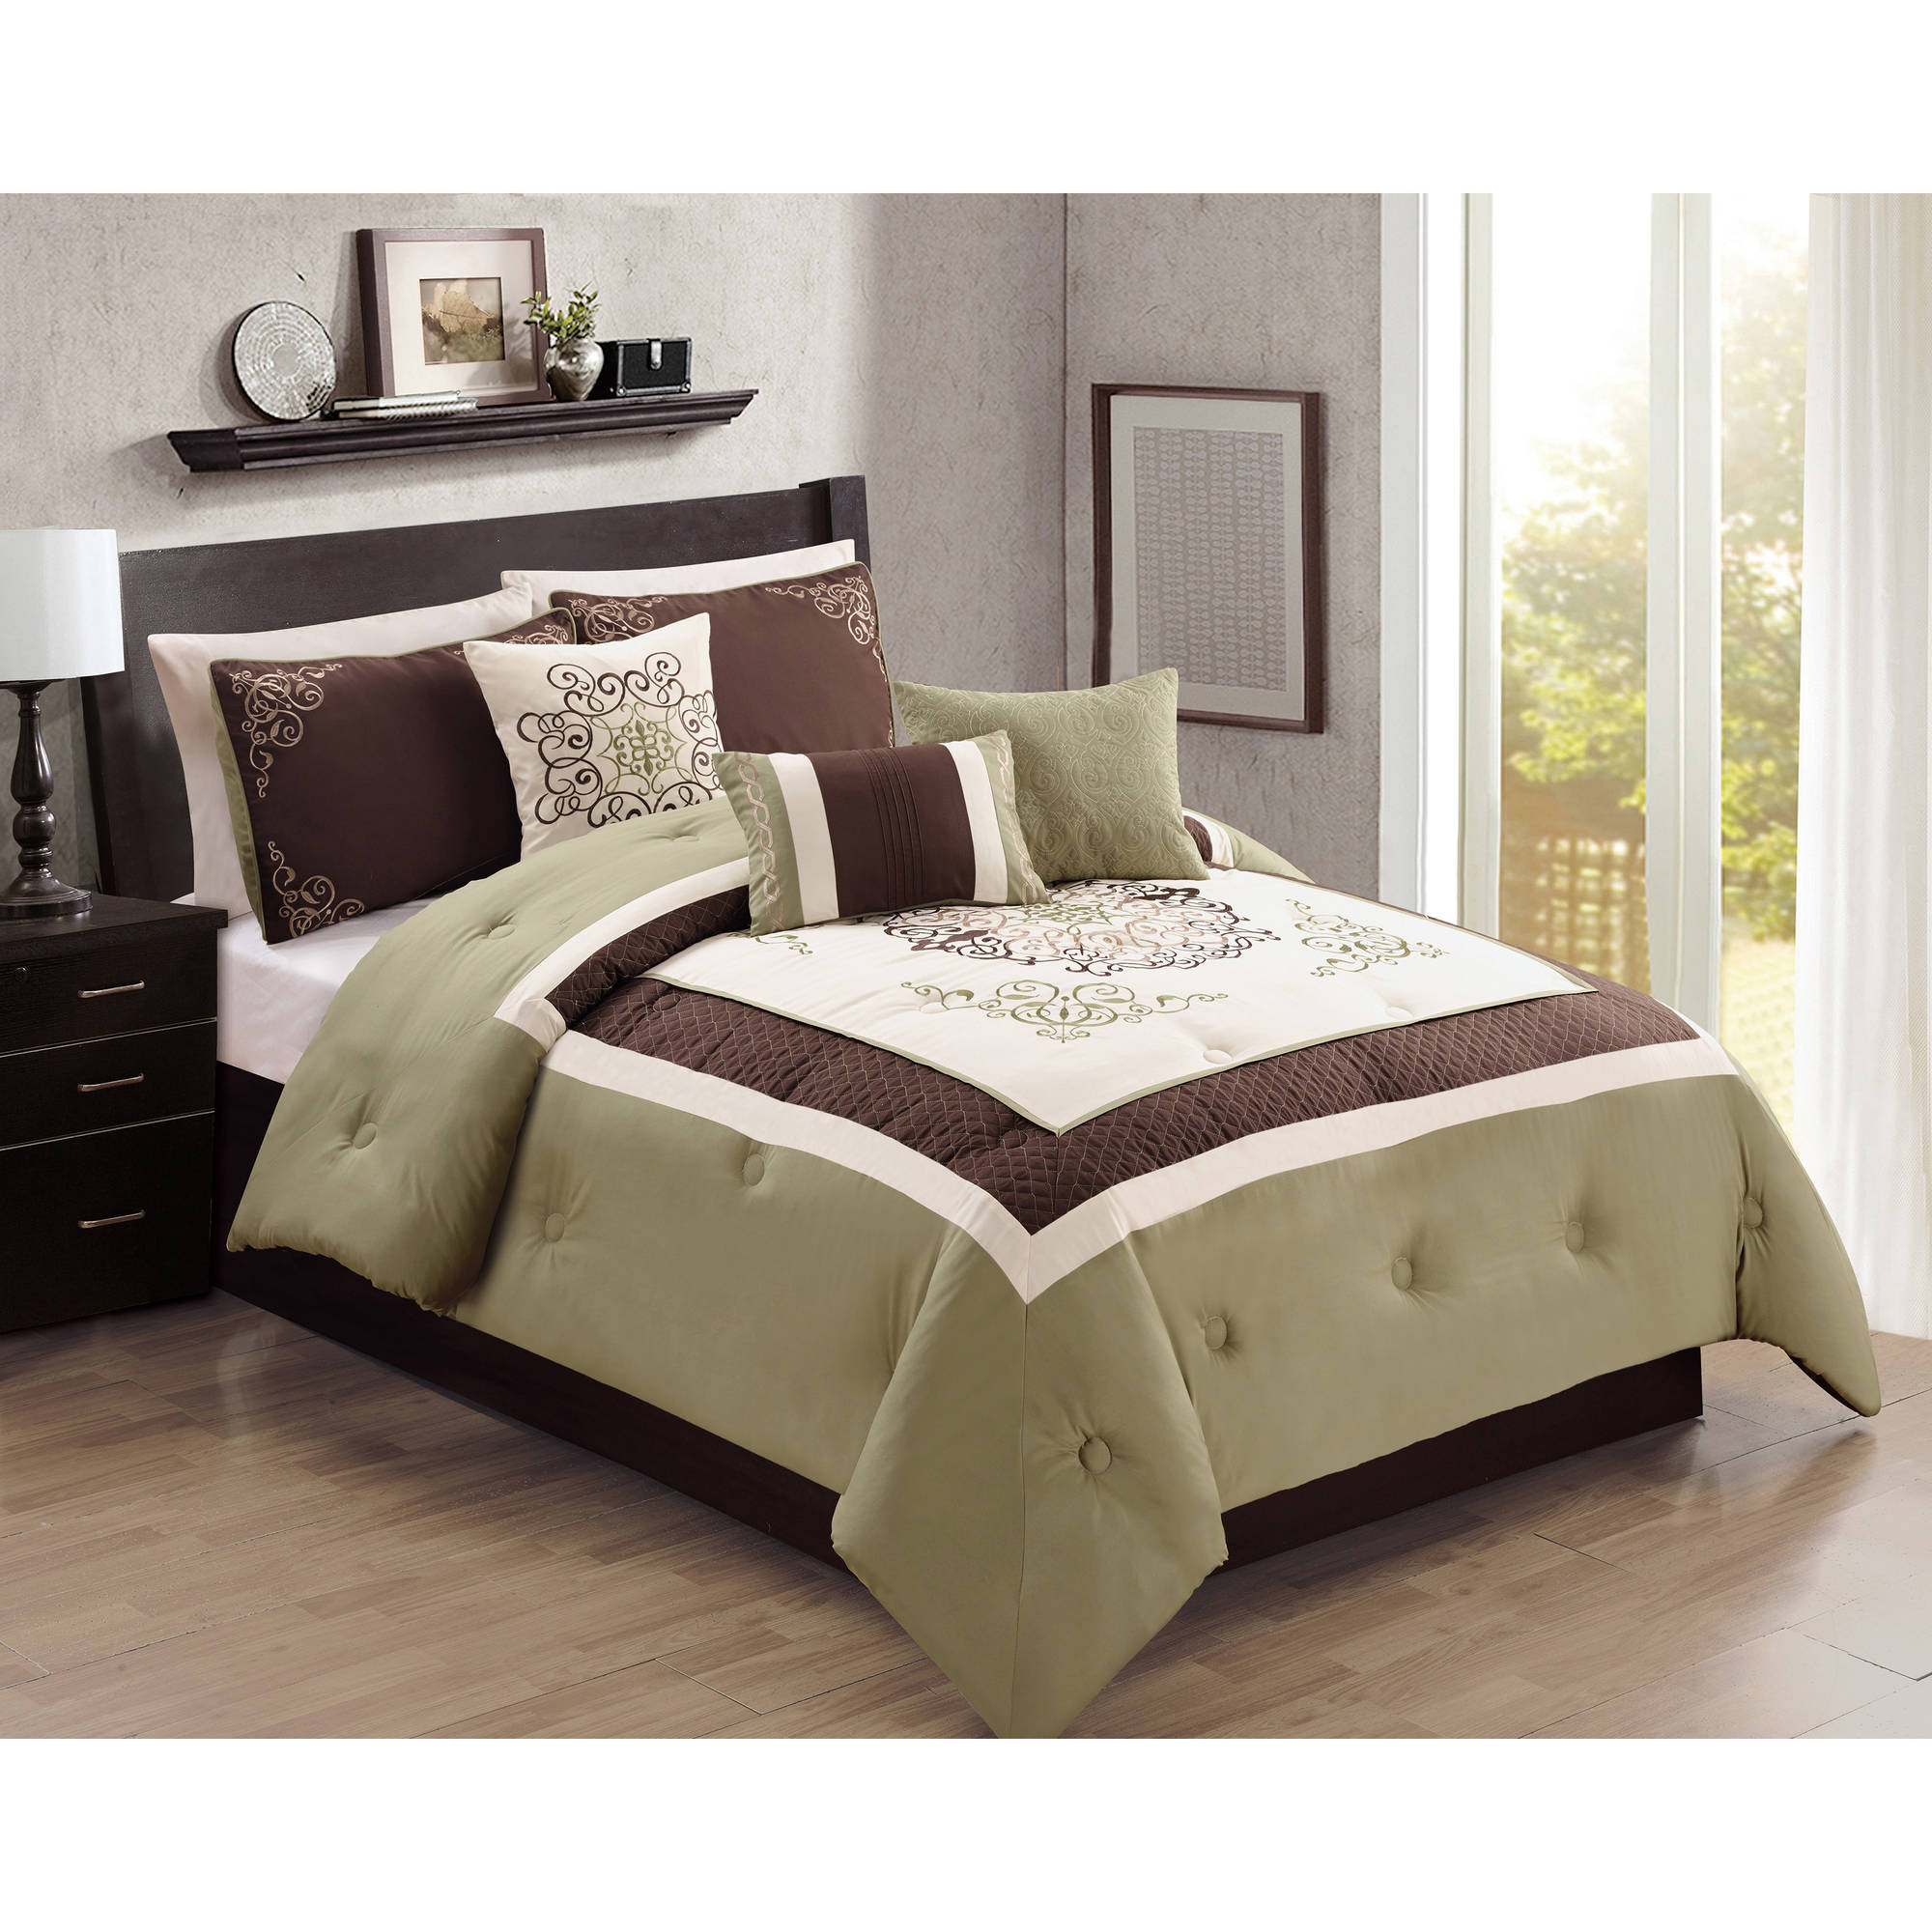 Better Homes and Gardens 7-Piece Traditional Medallion Bedding Comforter Set